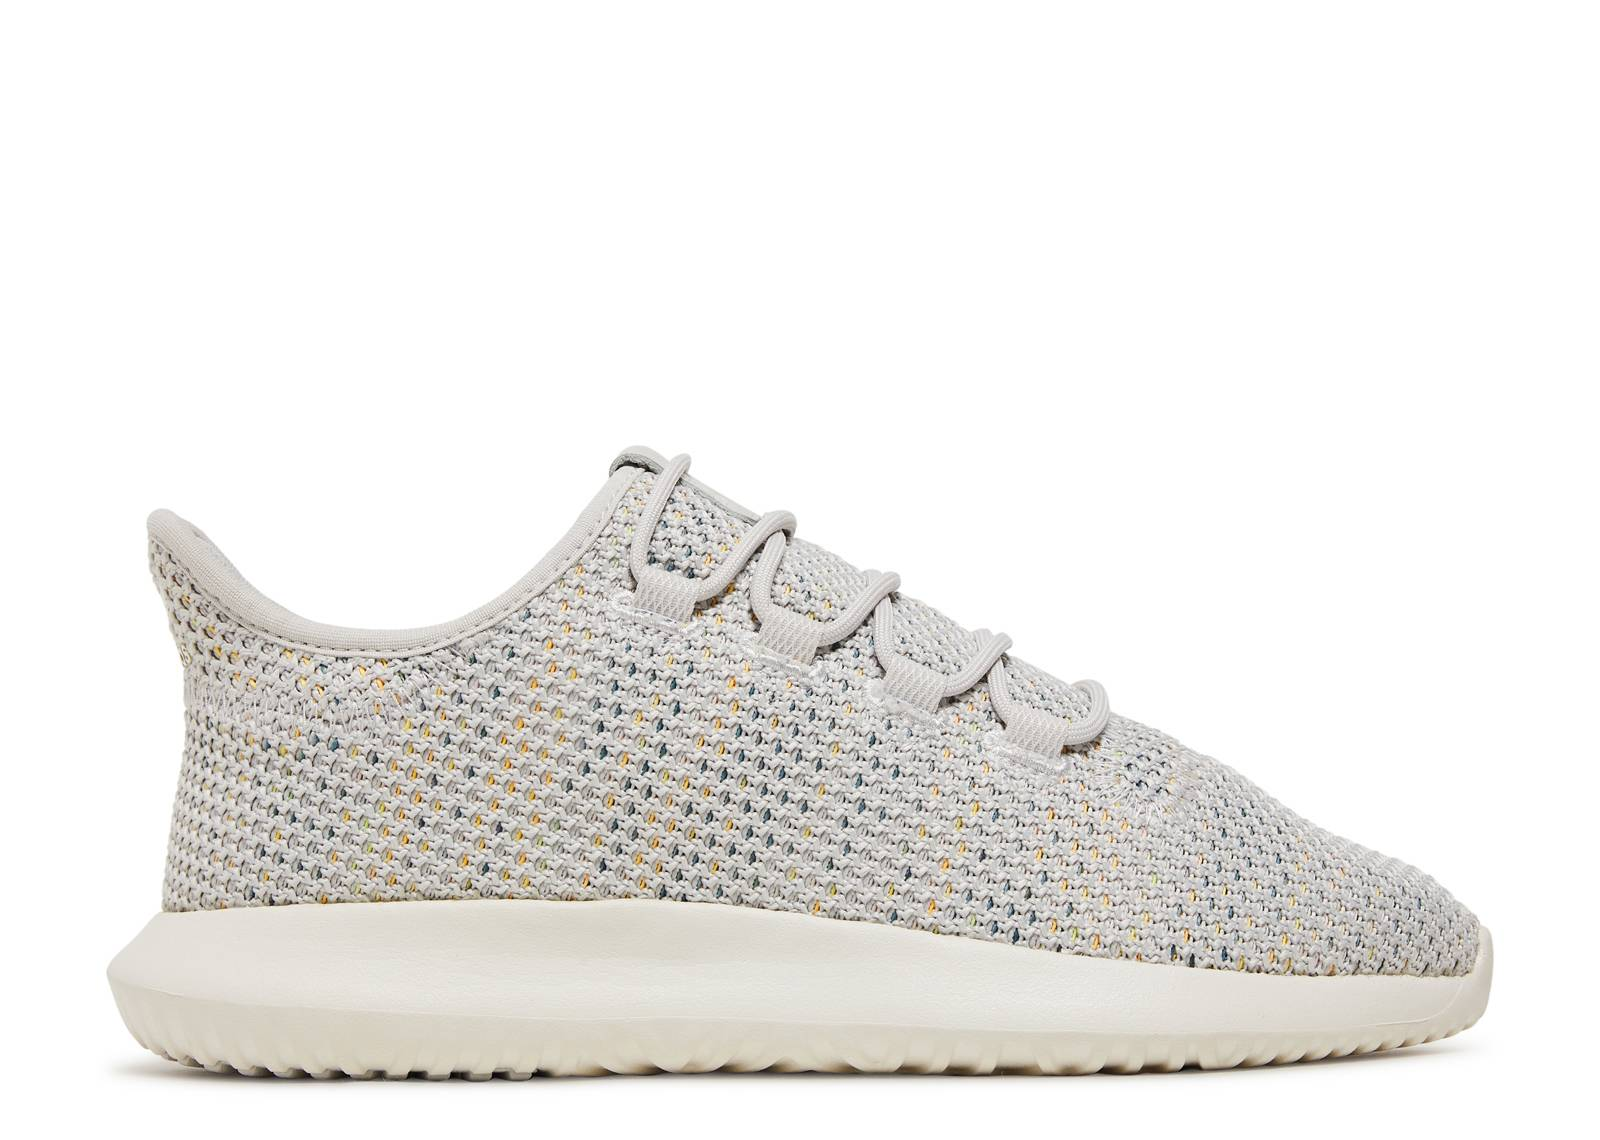 3c5155203b8 TUBULAR SHADOW CK - Adidas - B37714 - grey one cloud white raw green ...